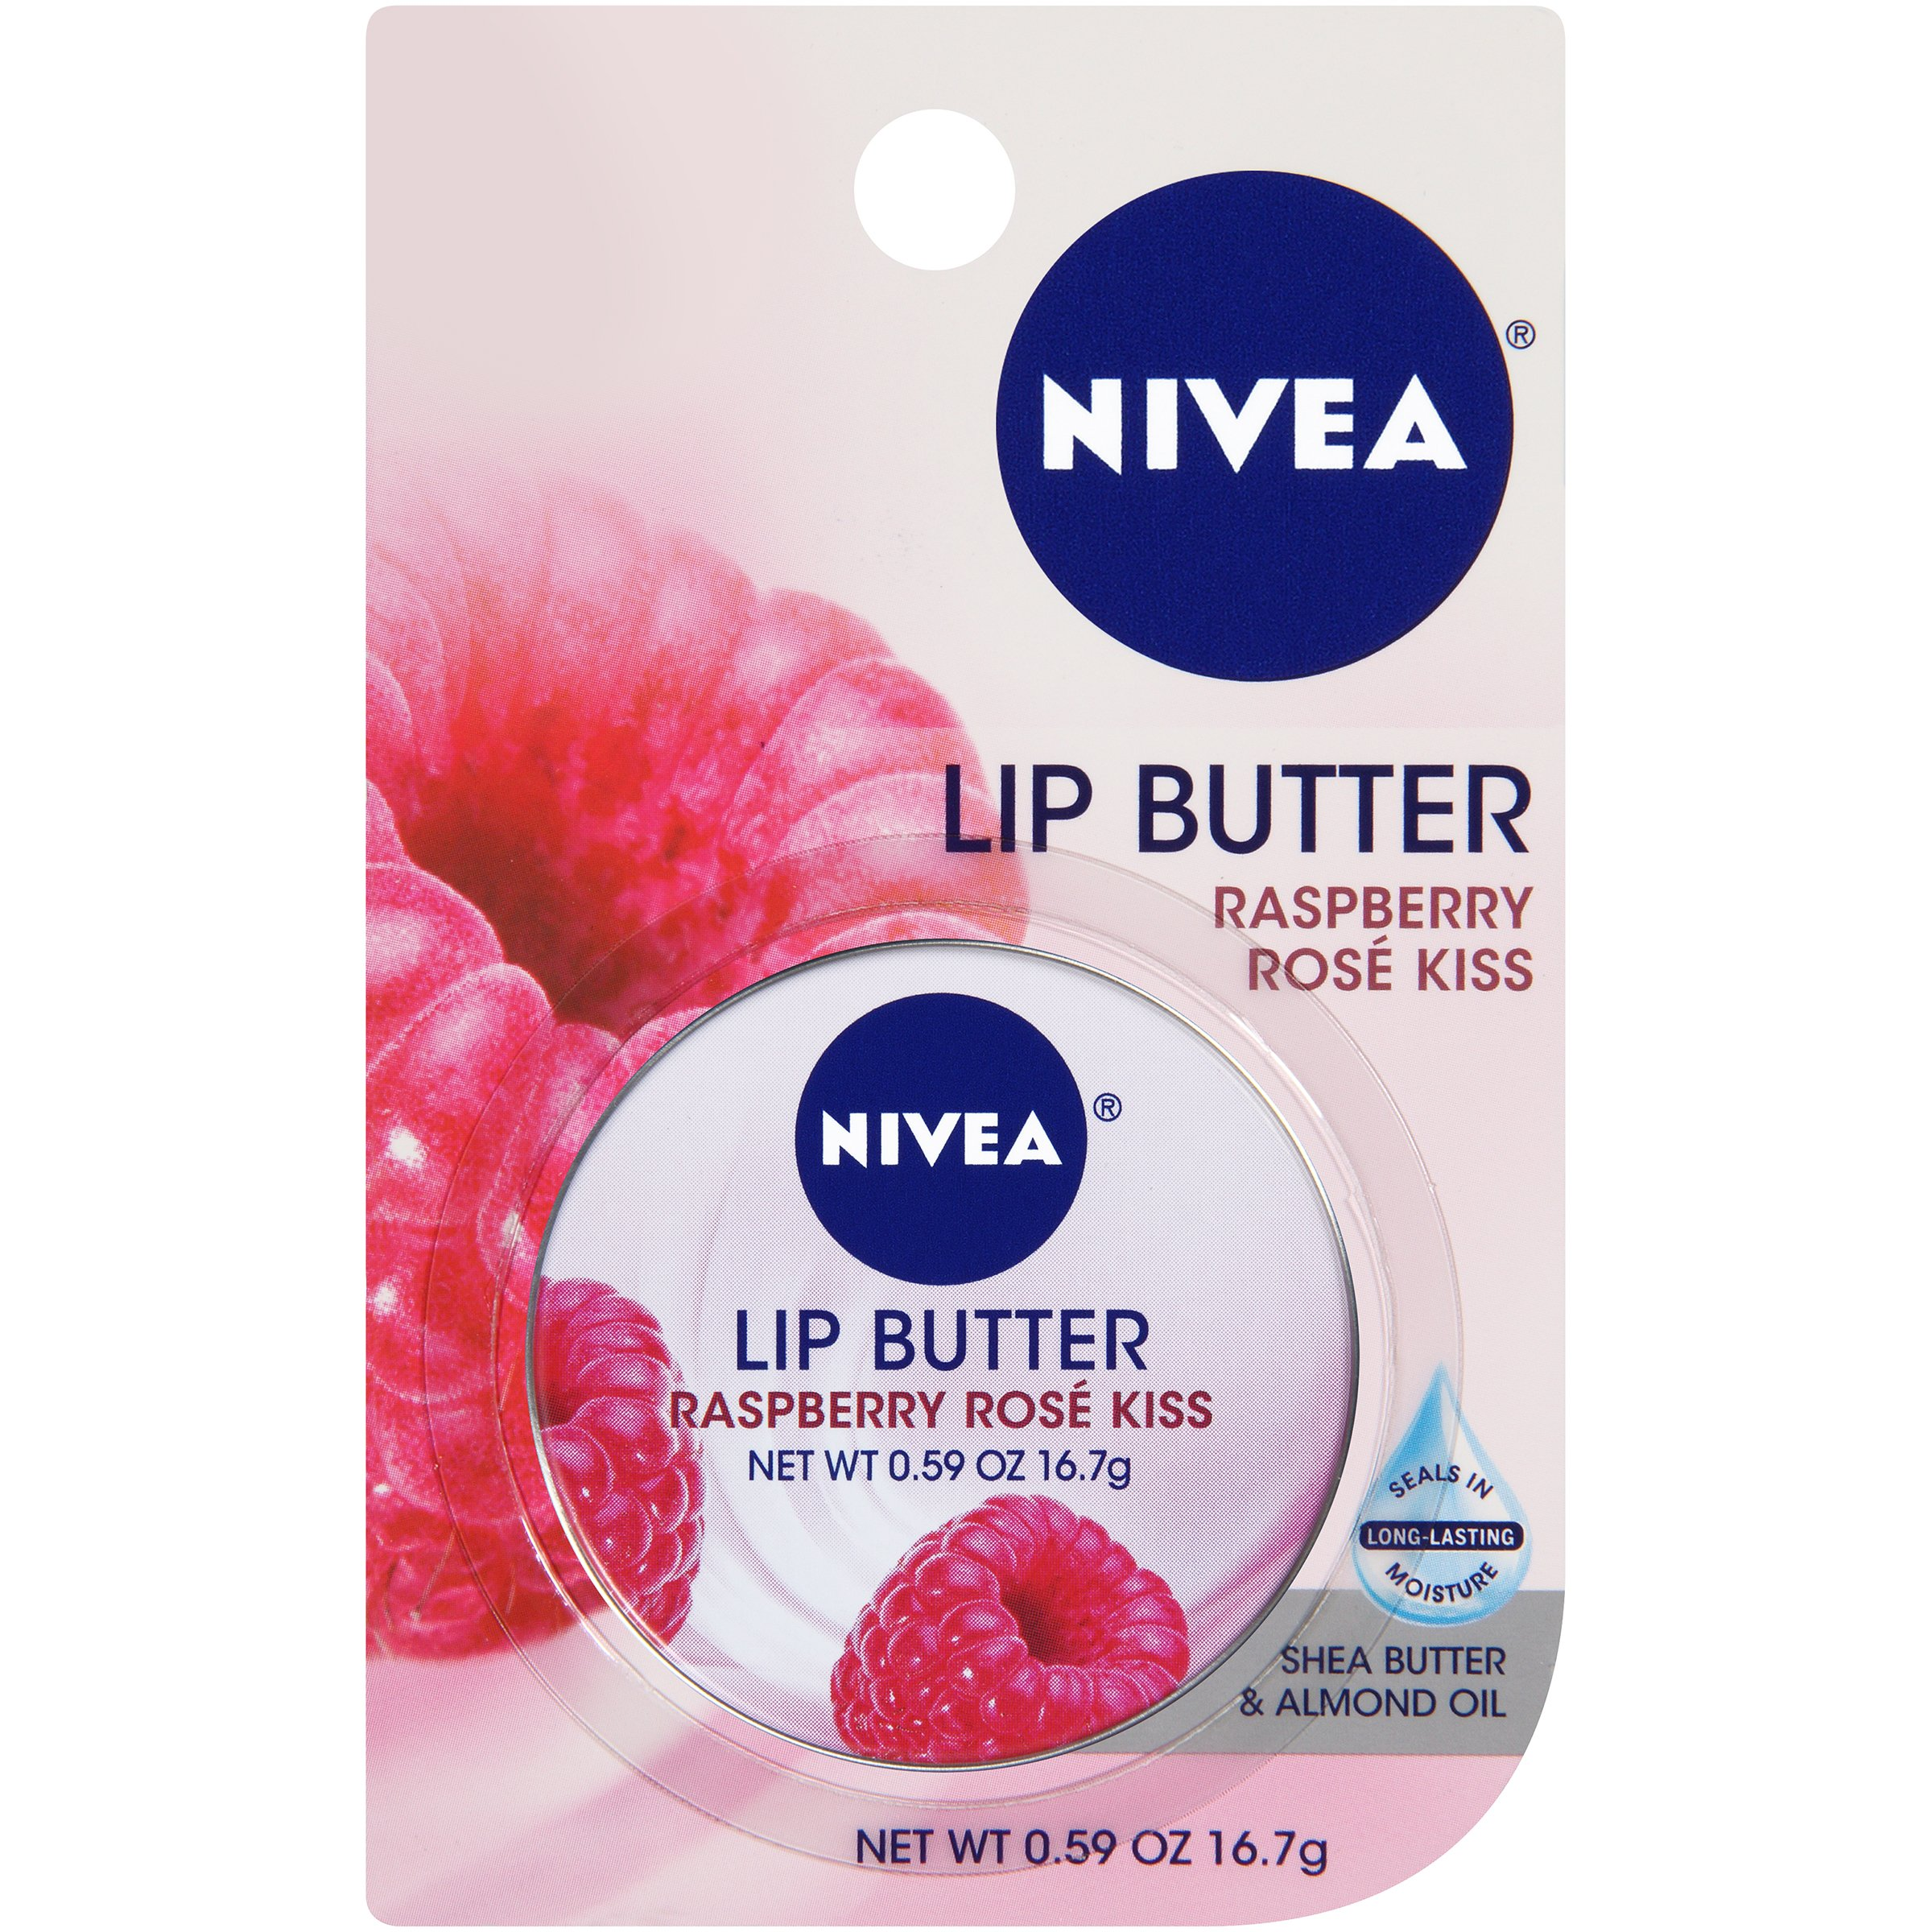 NIVEA Lip Butter Kiss Tin, Raspberry Rose 0.59 oz (Pack of 7) by Nivea